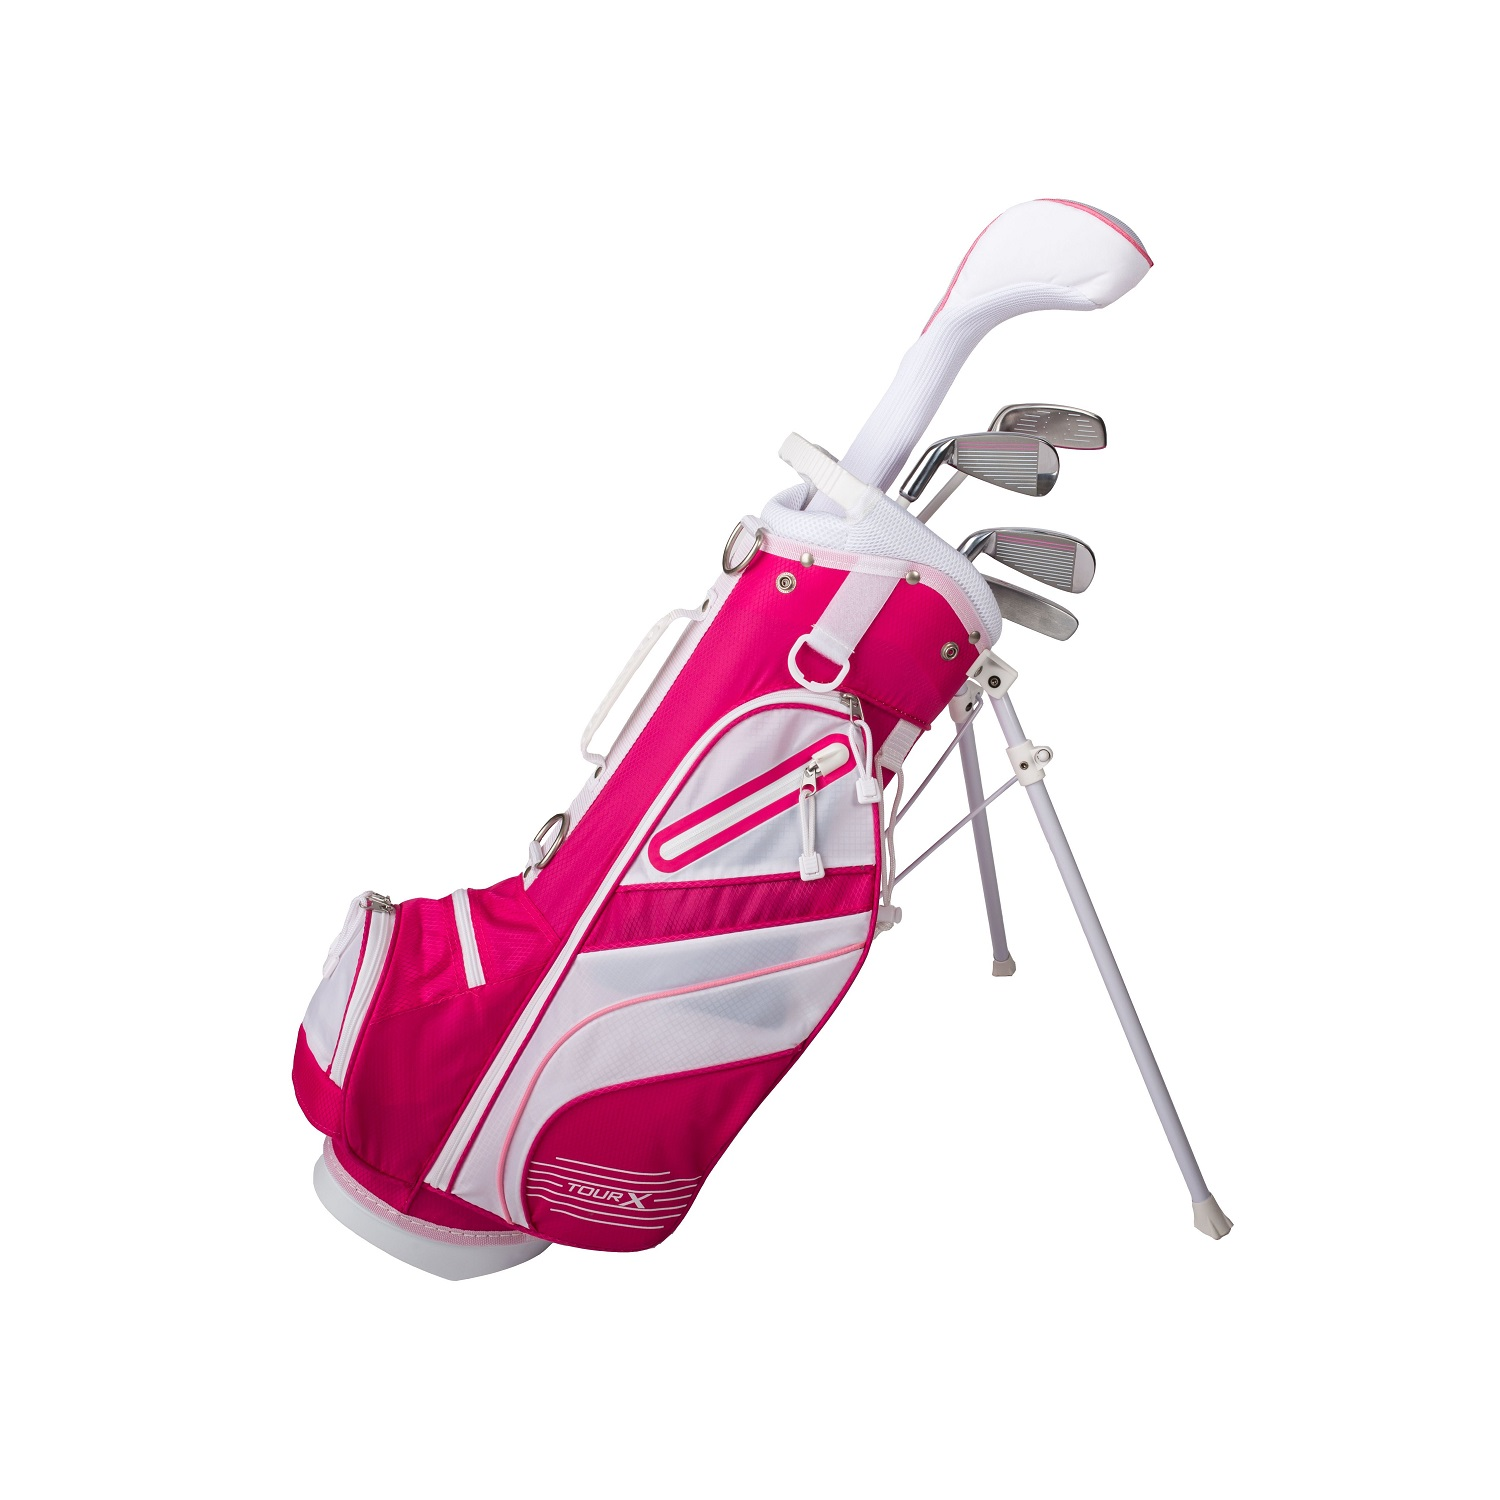 Tour X Size 1 Pink 5pc Jr Golf Set w/Stand Bag